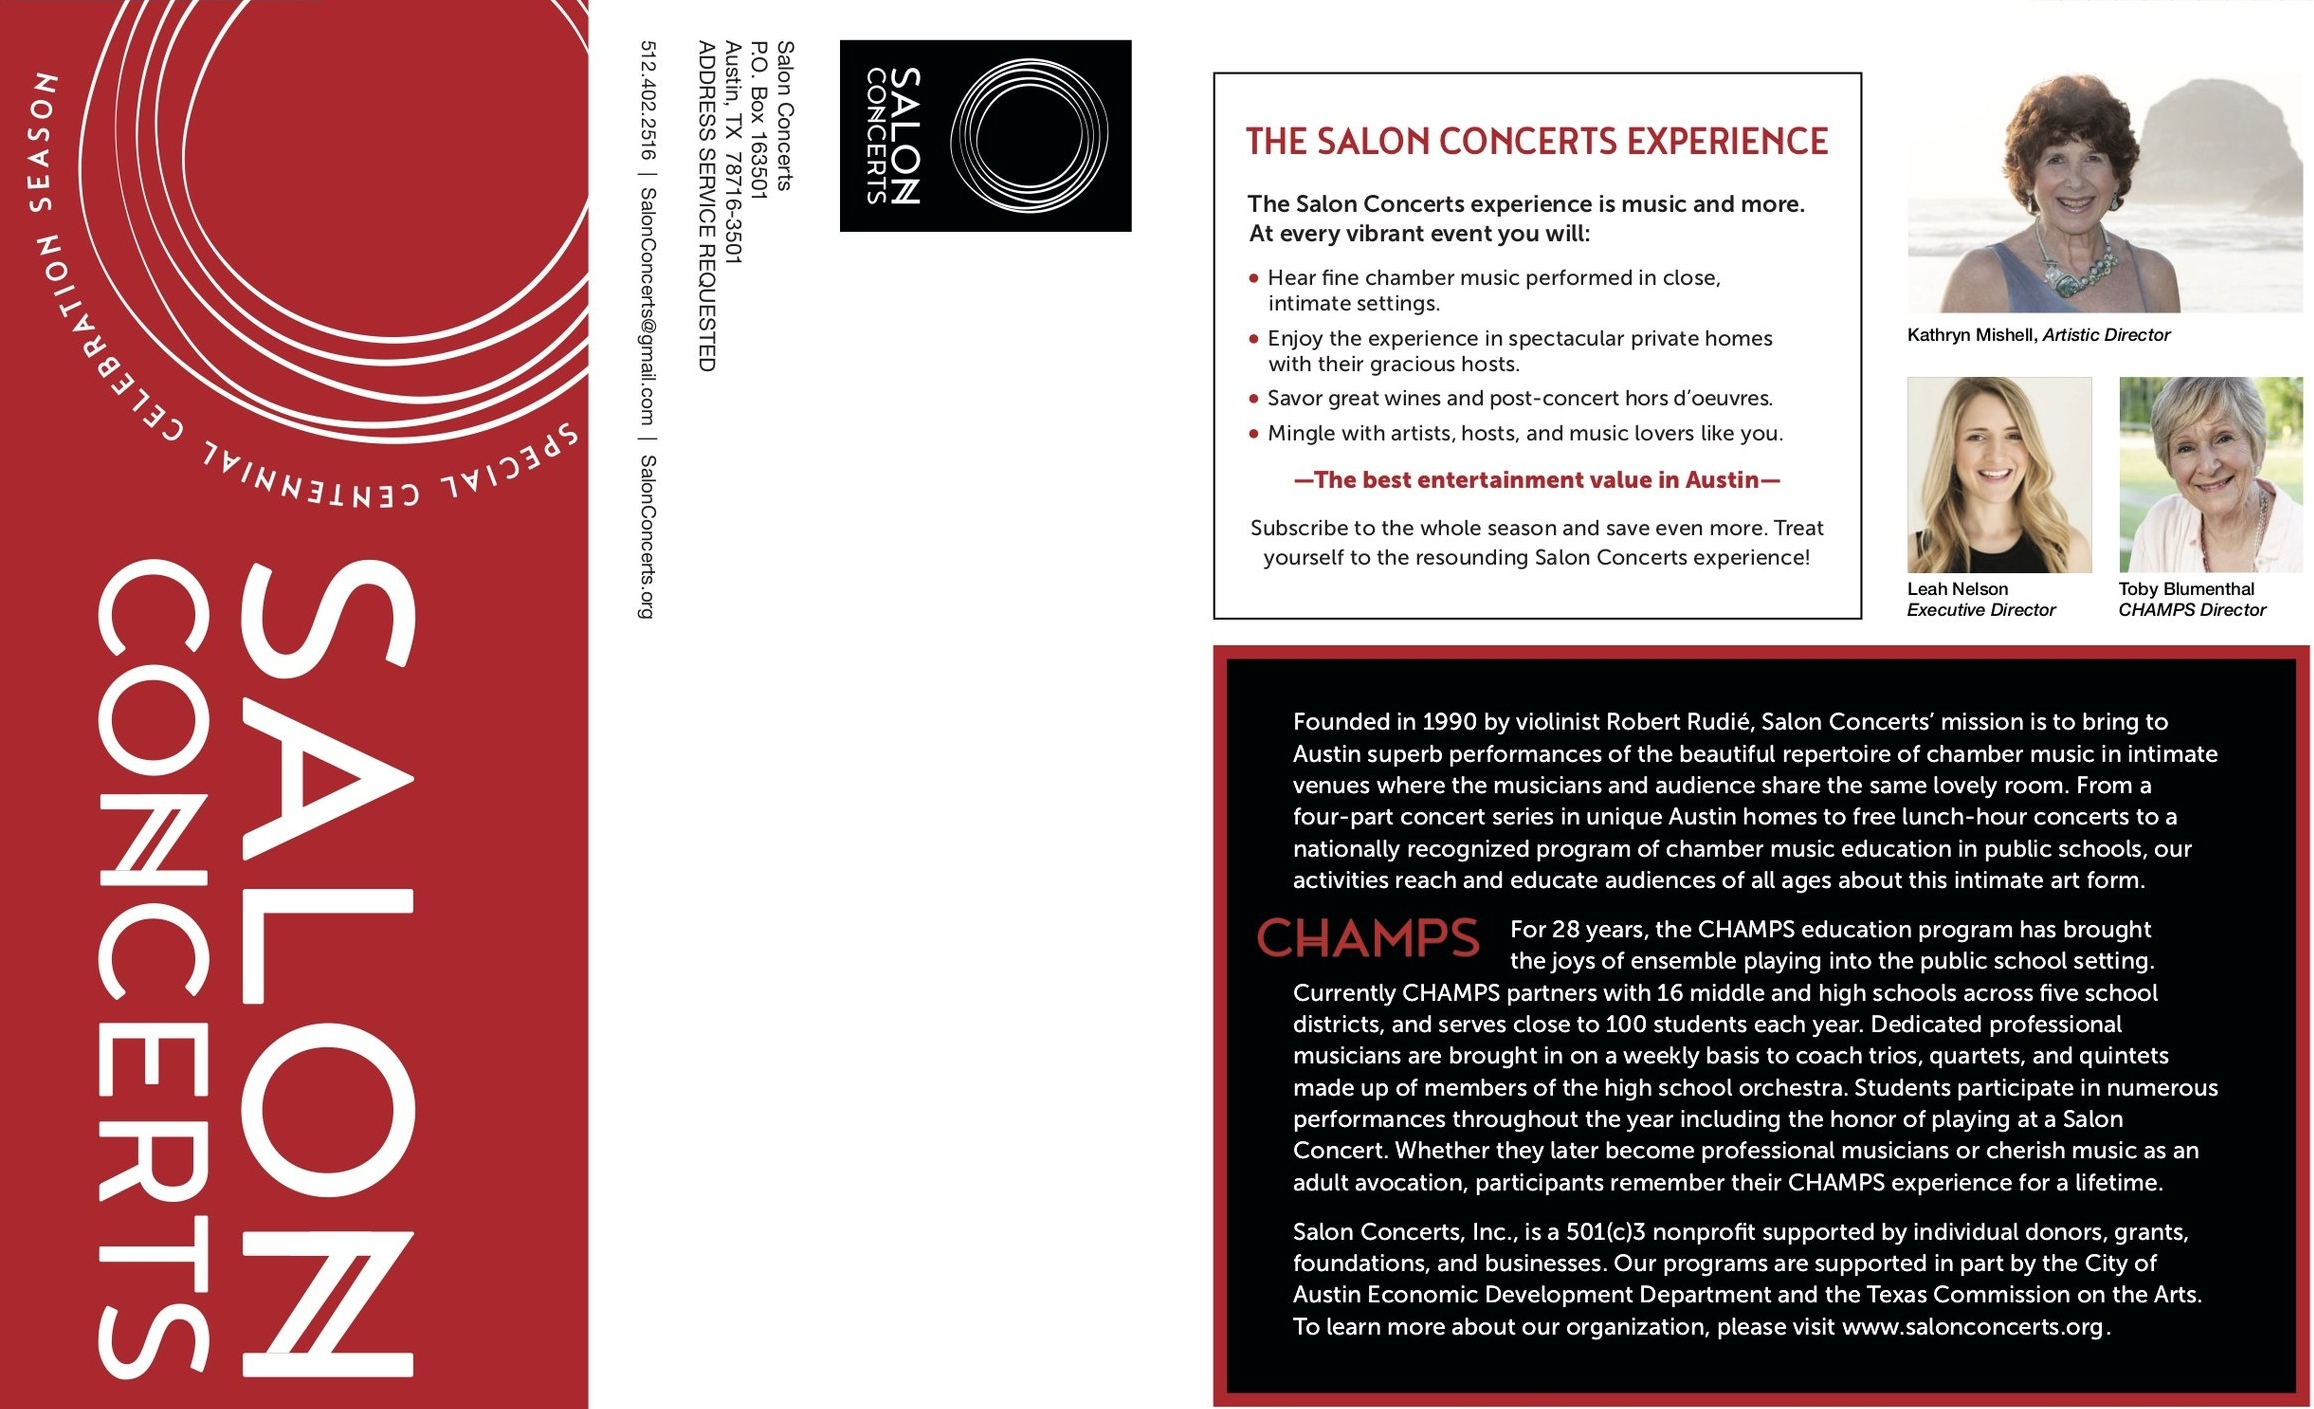 314562 Salon Concerts Brochure.jpg